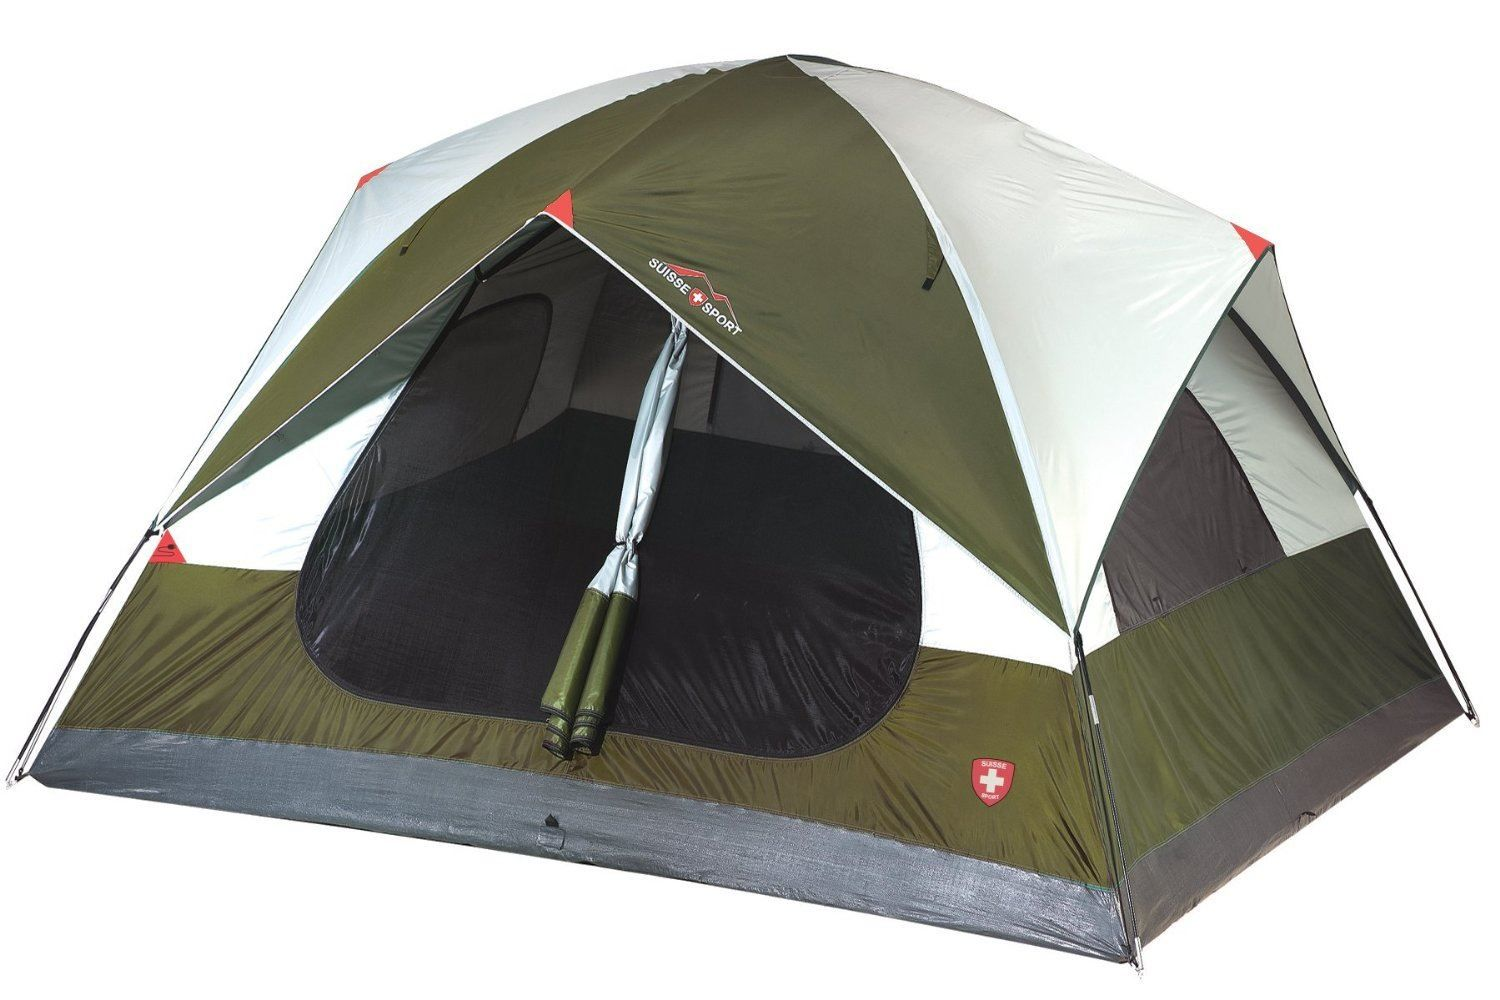 Suisse Sport Mammoth 2 Room Dome 4 Person Tent - Big R ...